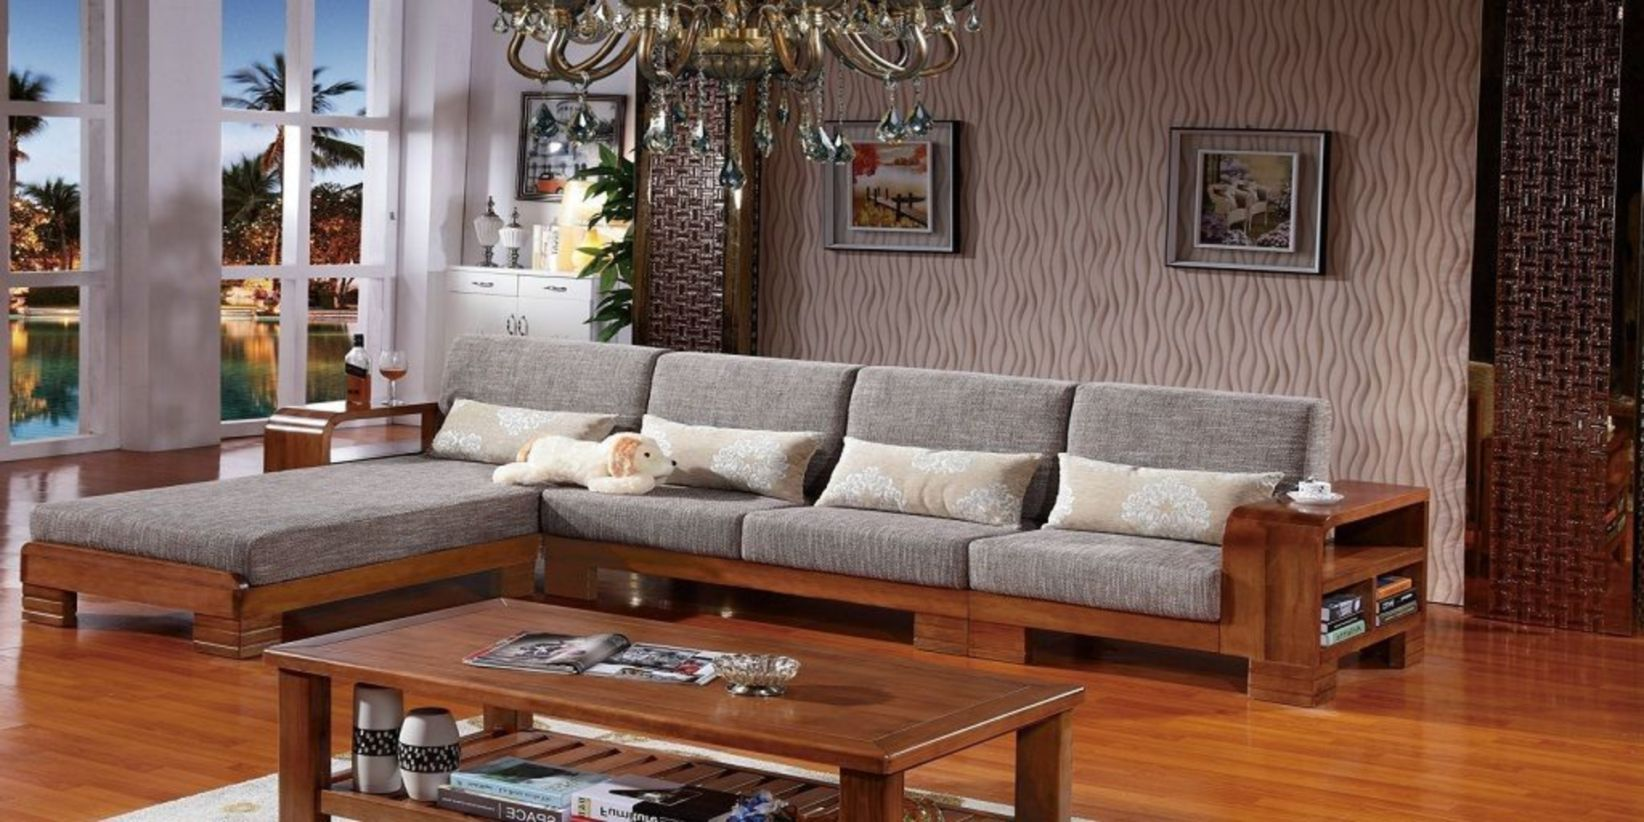 46 Living Room Design Furniture Sofa Set Is Perfect For Your Home Living Room Sofa Design Wooden Sofa Designs Wooden Sofa Set